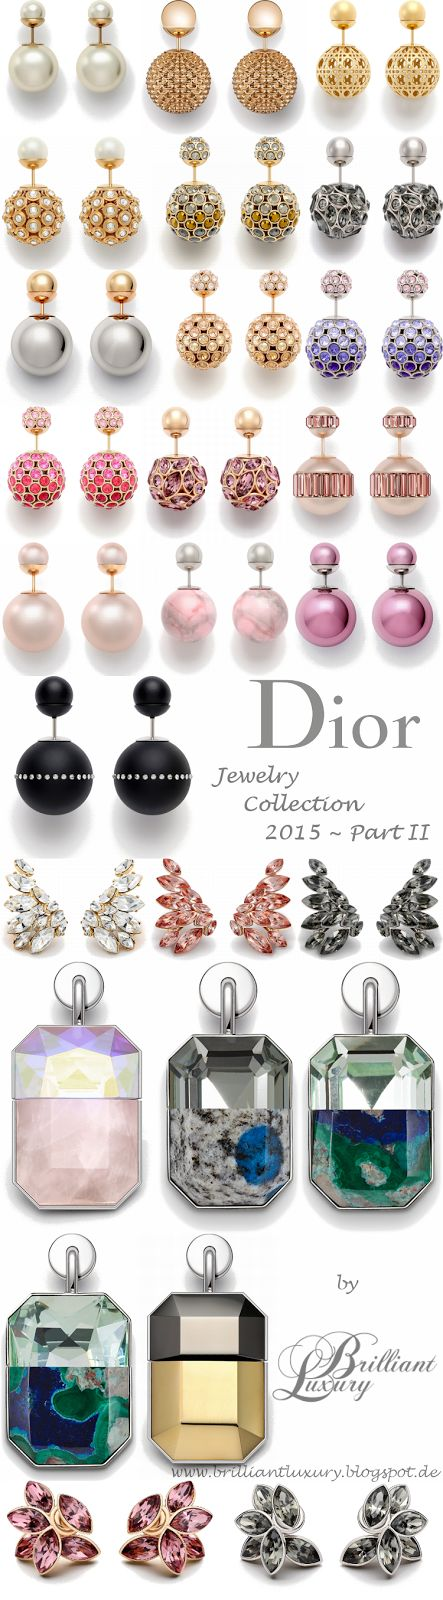 Textura Cores, Formas, Unidade, Luxo Brilliant Luxury * Dior Jewelry Collection 2015 ~ Part II